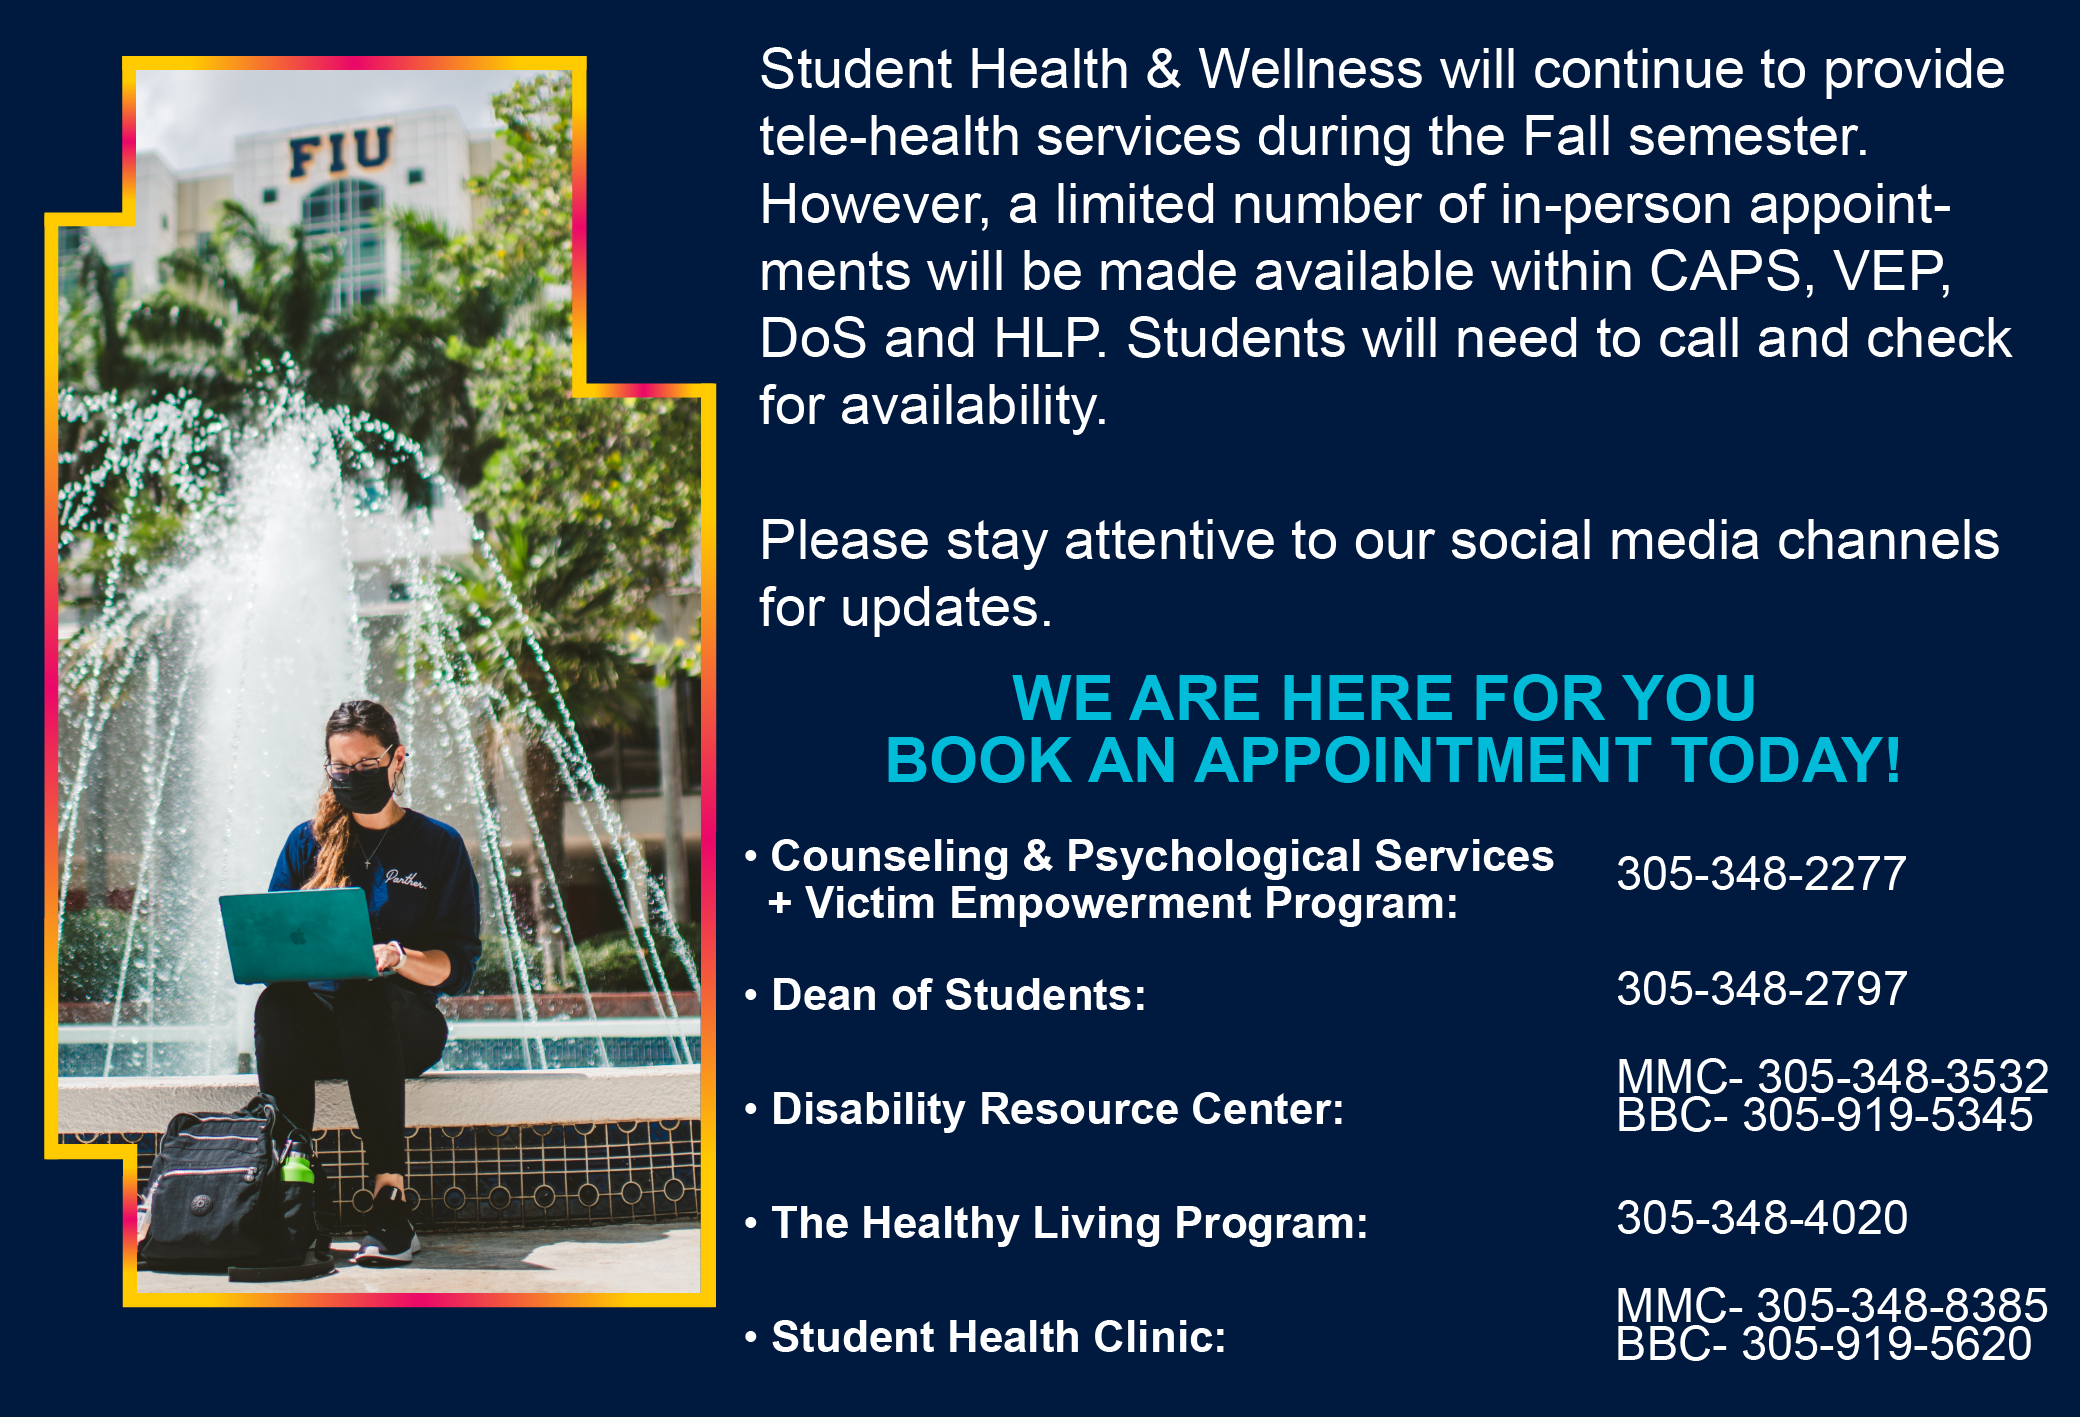 Student health & wellness will continue to provide tele-health services during the Fall semester. However, a limited number of in-person appointments will be made available with CAPS, VEP, DoS and HLP. Students will need to call and check for availability. Please stay attentive to our social media channels for updates. We are here for you book an appointment today!   Counseling & Psychological Services + Victim Empowerment Program: 305-348-2277 Dean of students: 305-348-2797 Disability resource center: MMC- 305-348—3532, BBC- 305-919-5345 The Healthy Living Program: 305-348-4020 Student Health Clinic: MMC- 305-348-8385, BBC- 305-919-5620